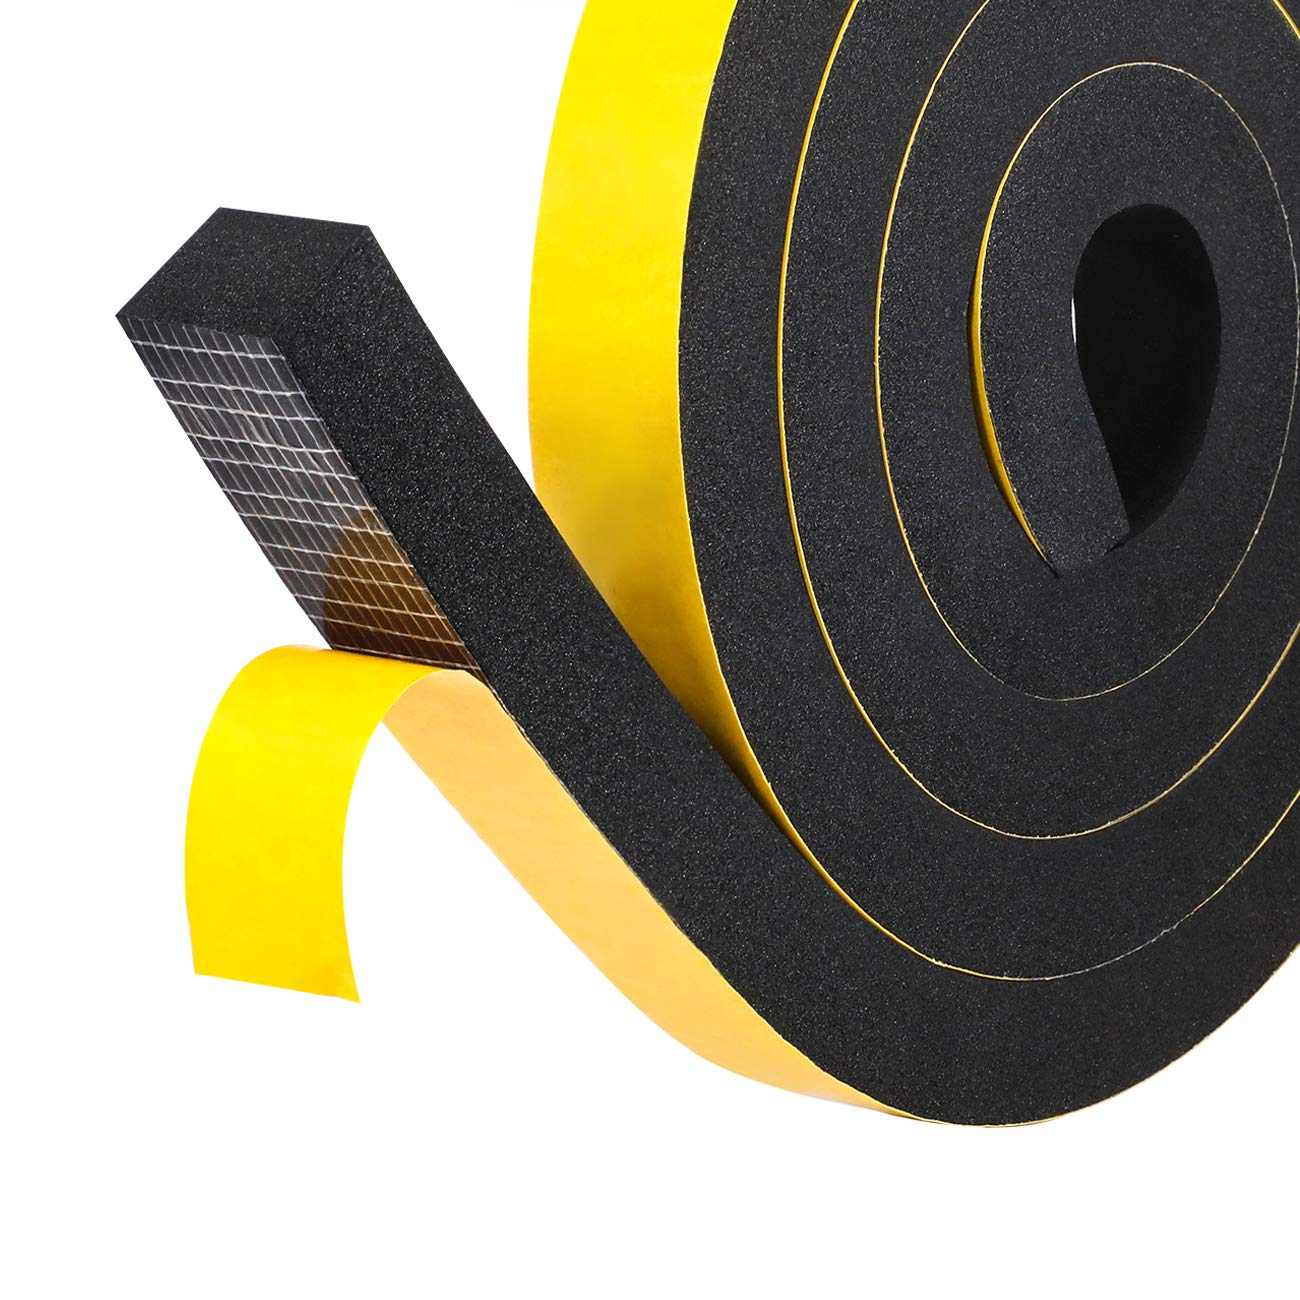 High Density Foam Insulation Tape, Soundproofing Closed Cell Foam Seal Weather Stripping with Adhesive 1'' W X 3/4'' T X 13' L, Black by fowong